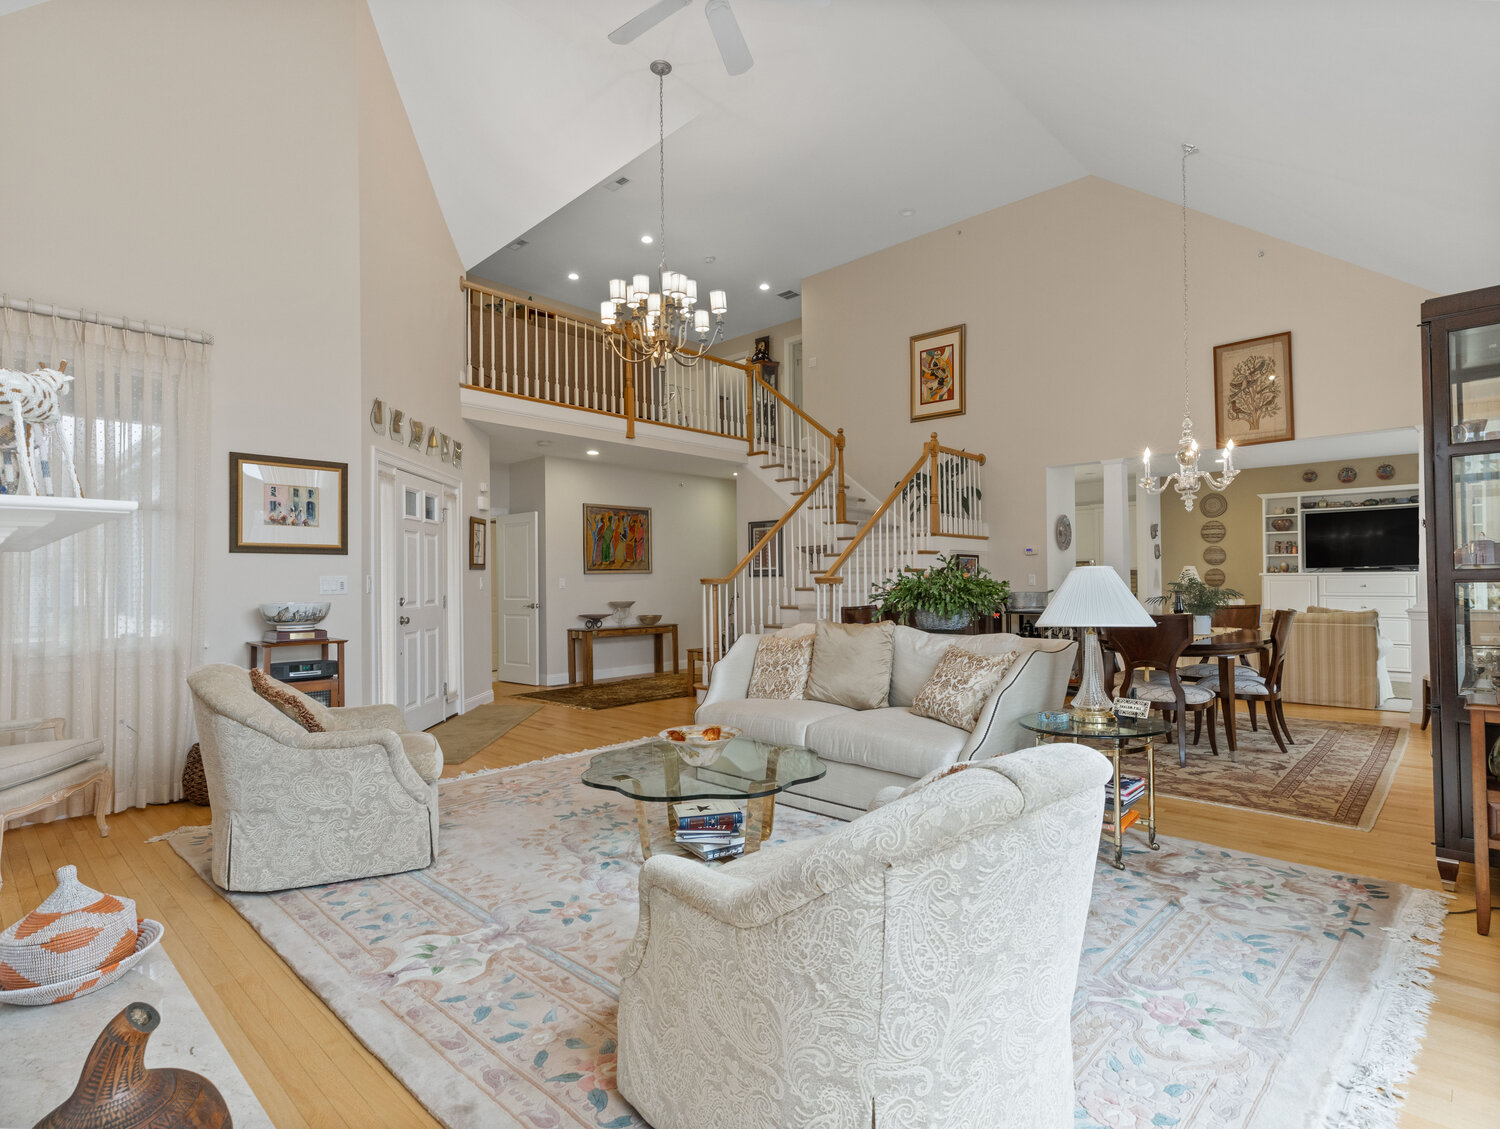 OPEN HOUSE: 8 S Cottage Rd #63 Belmont MA 02478